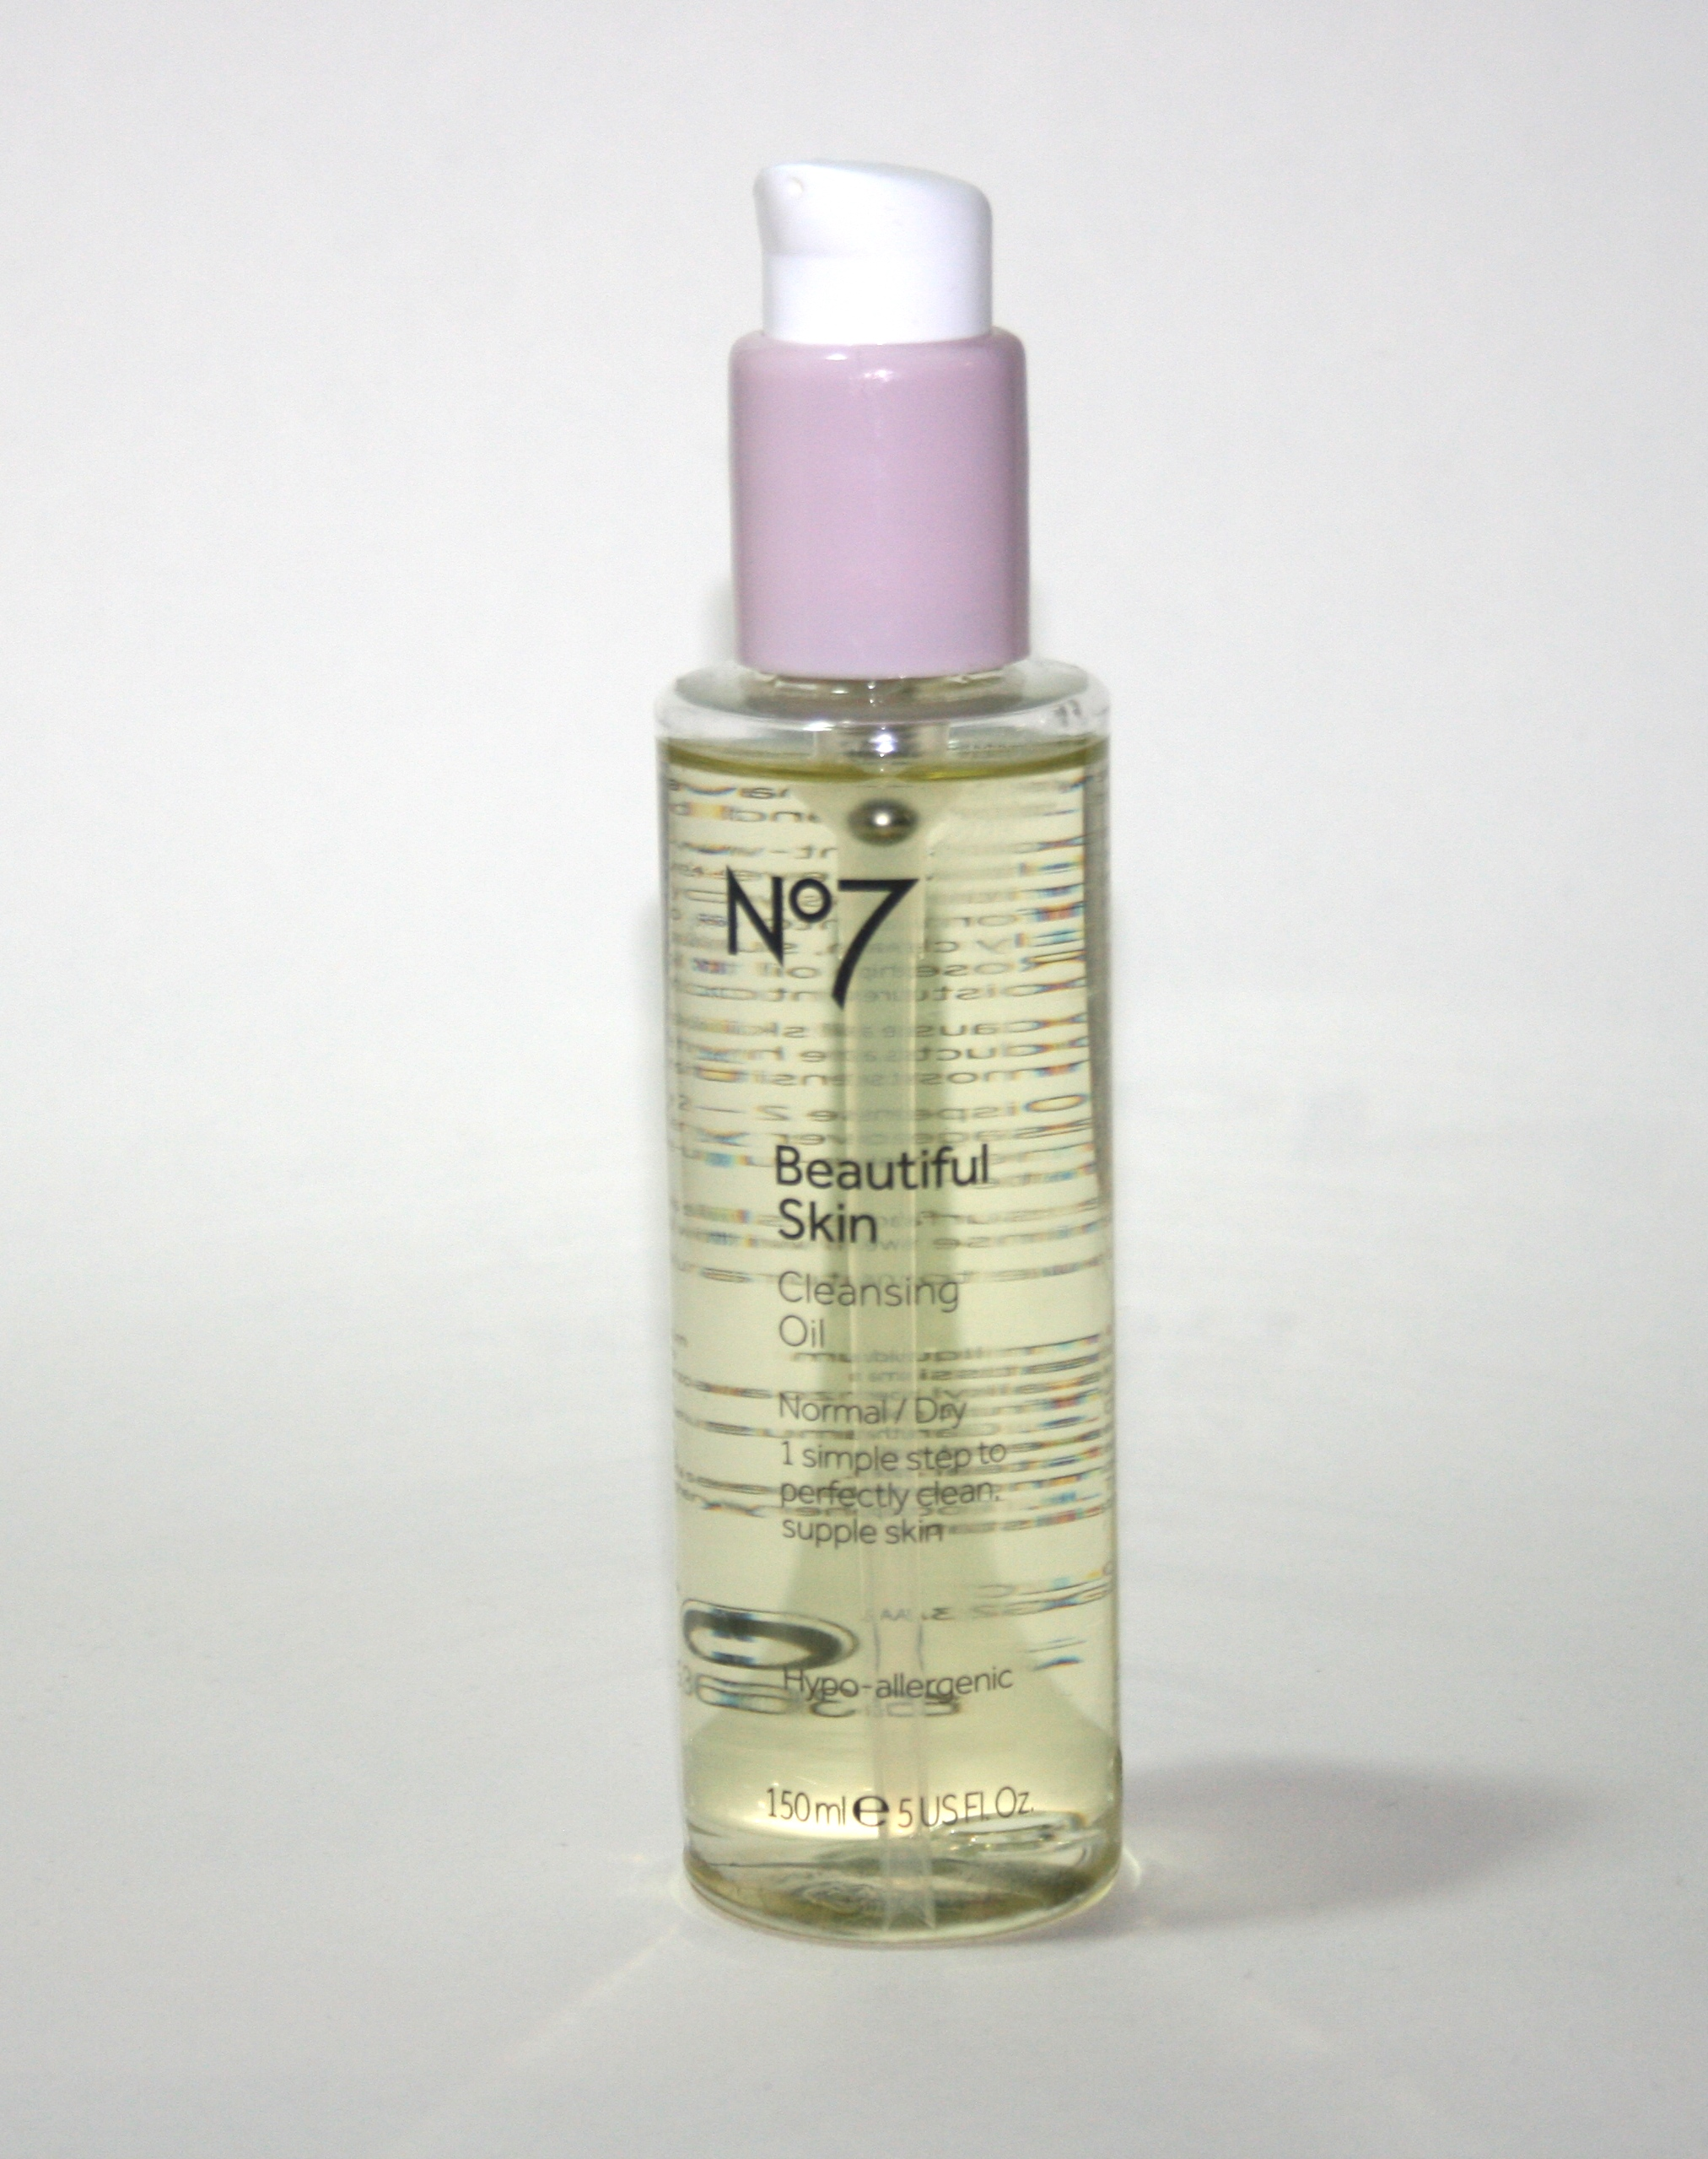 boots no7 beautiful skin cleansing uk